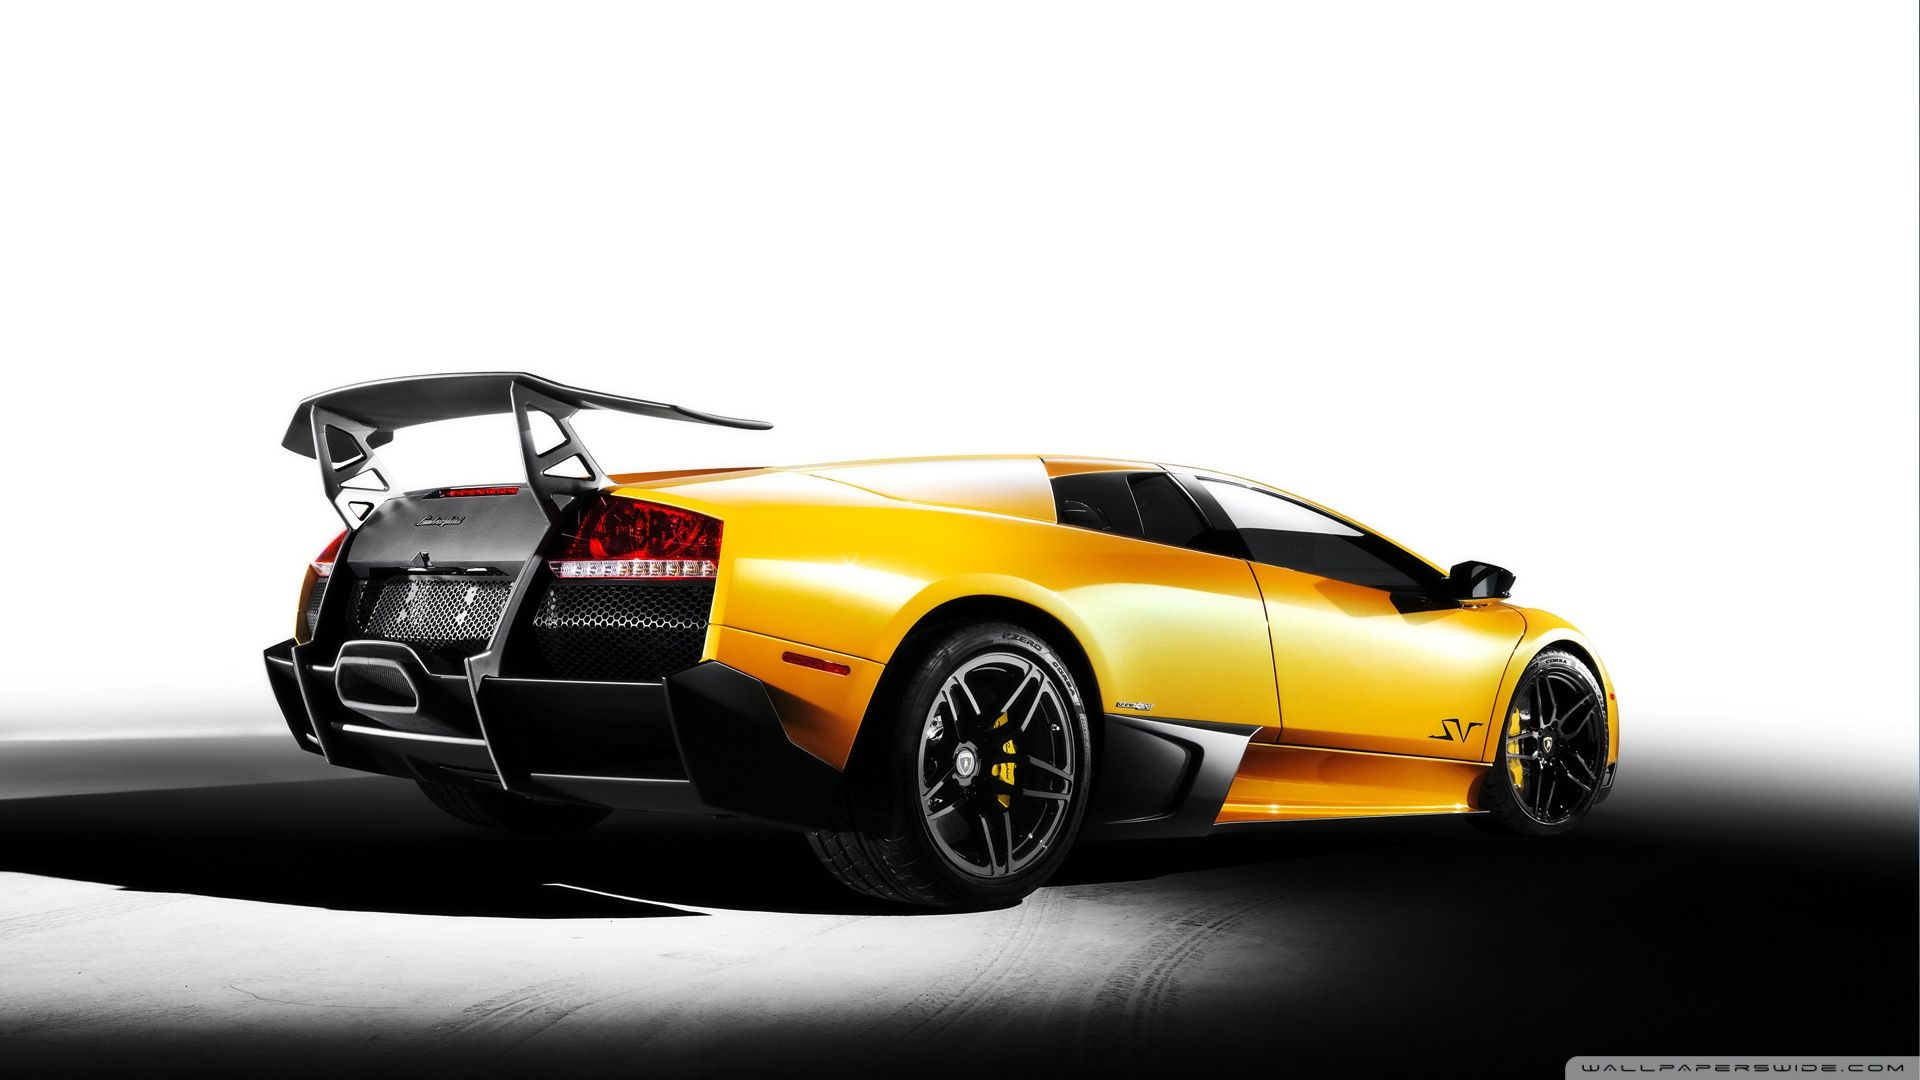 Super Sports Car Wallpapers Thatll Blow Your Desktop Away